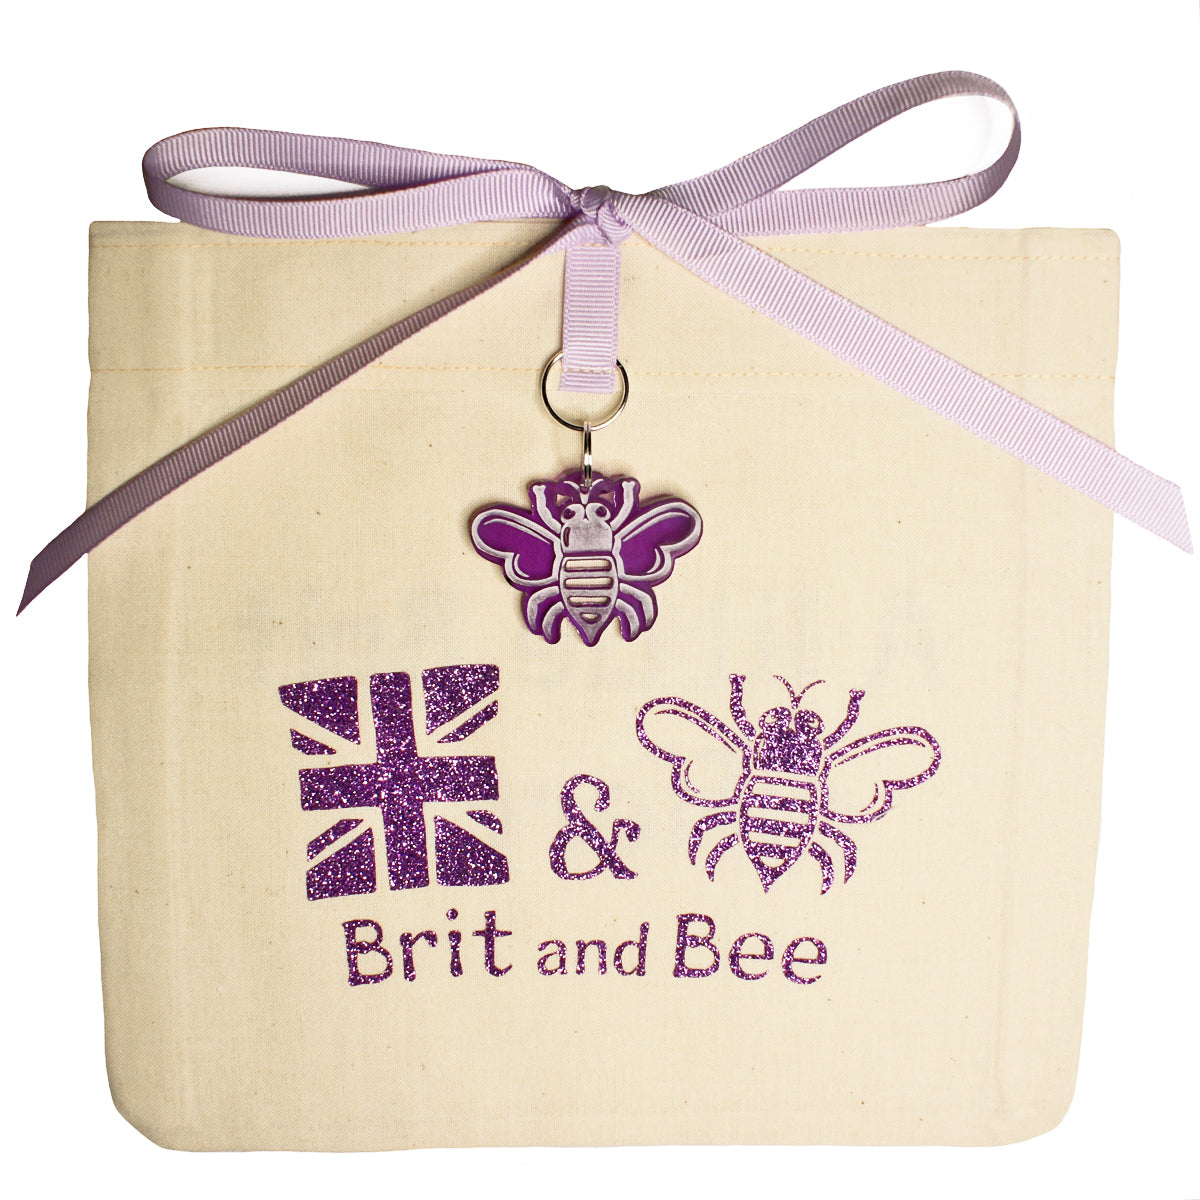 Brit and Bee Sorority Ribbon Alumna Decal - Sigma Sigma Sigma